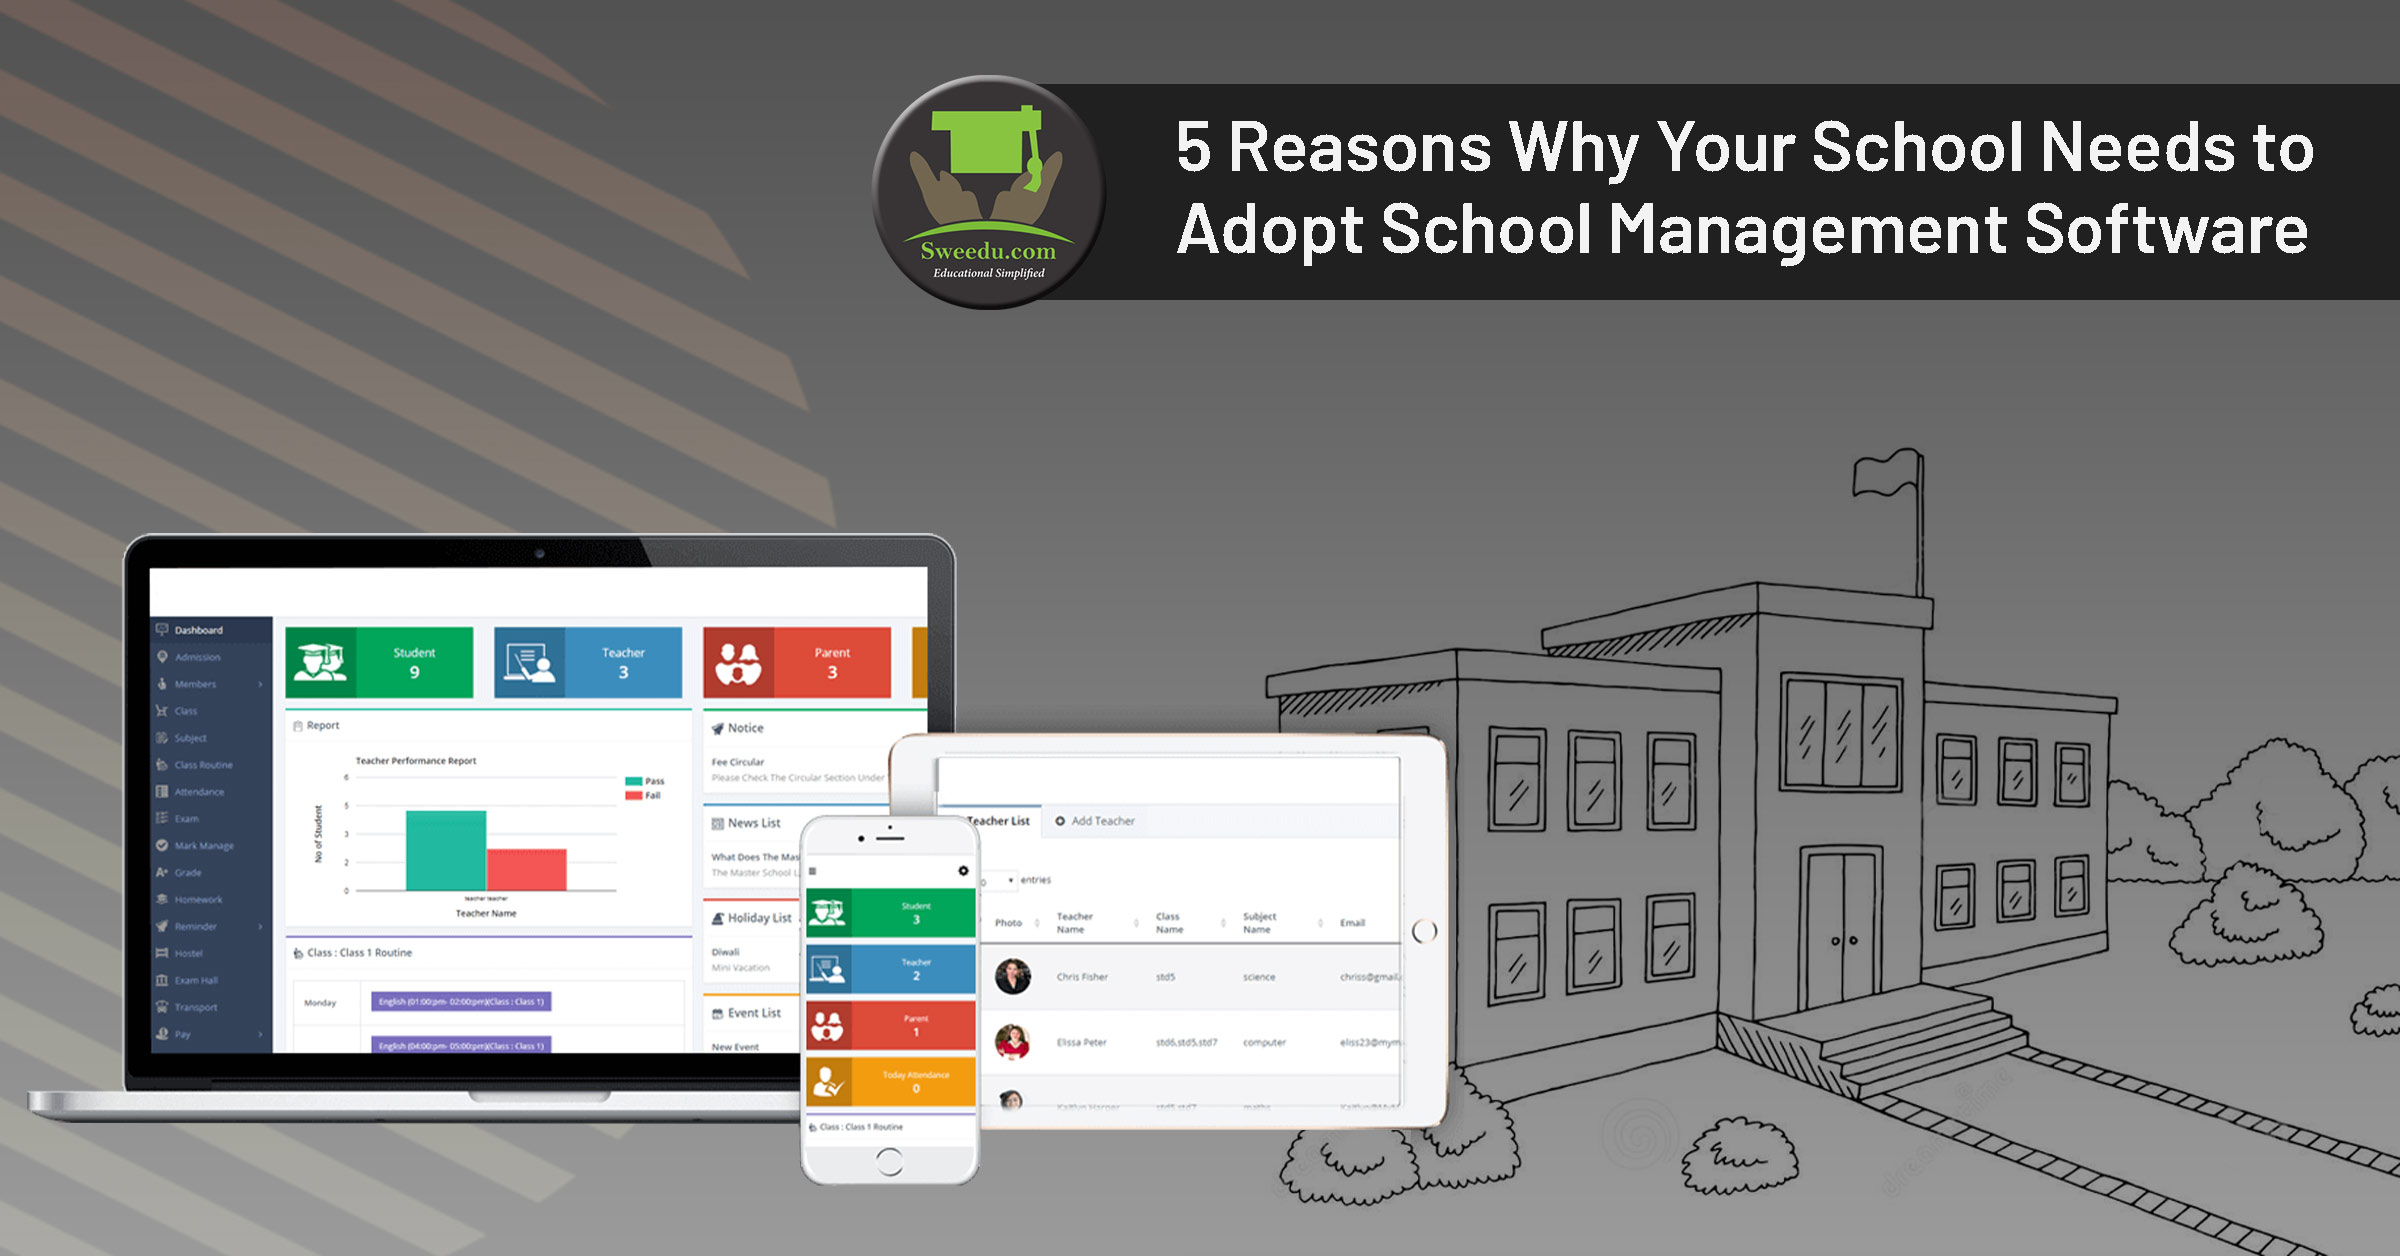 5 Reasons Why Your School Needs to Adopt School Management Software